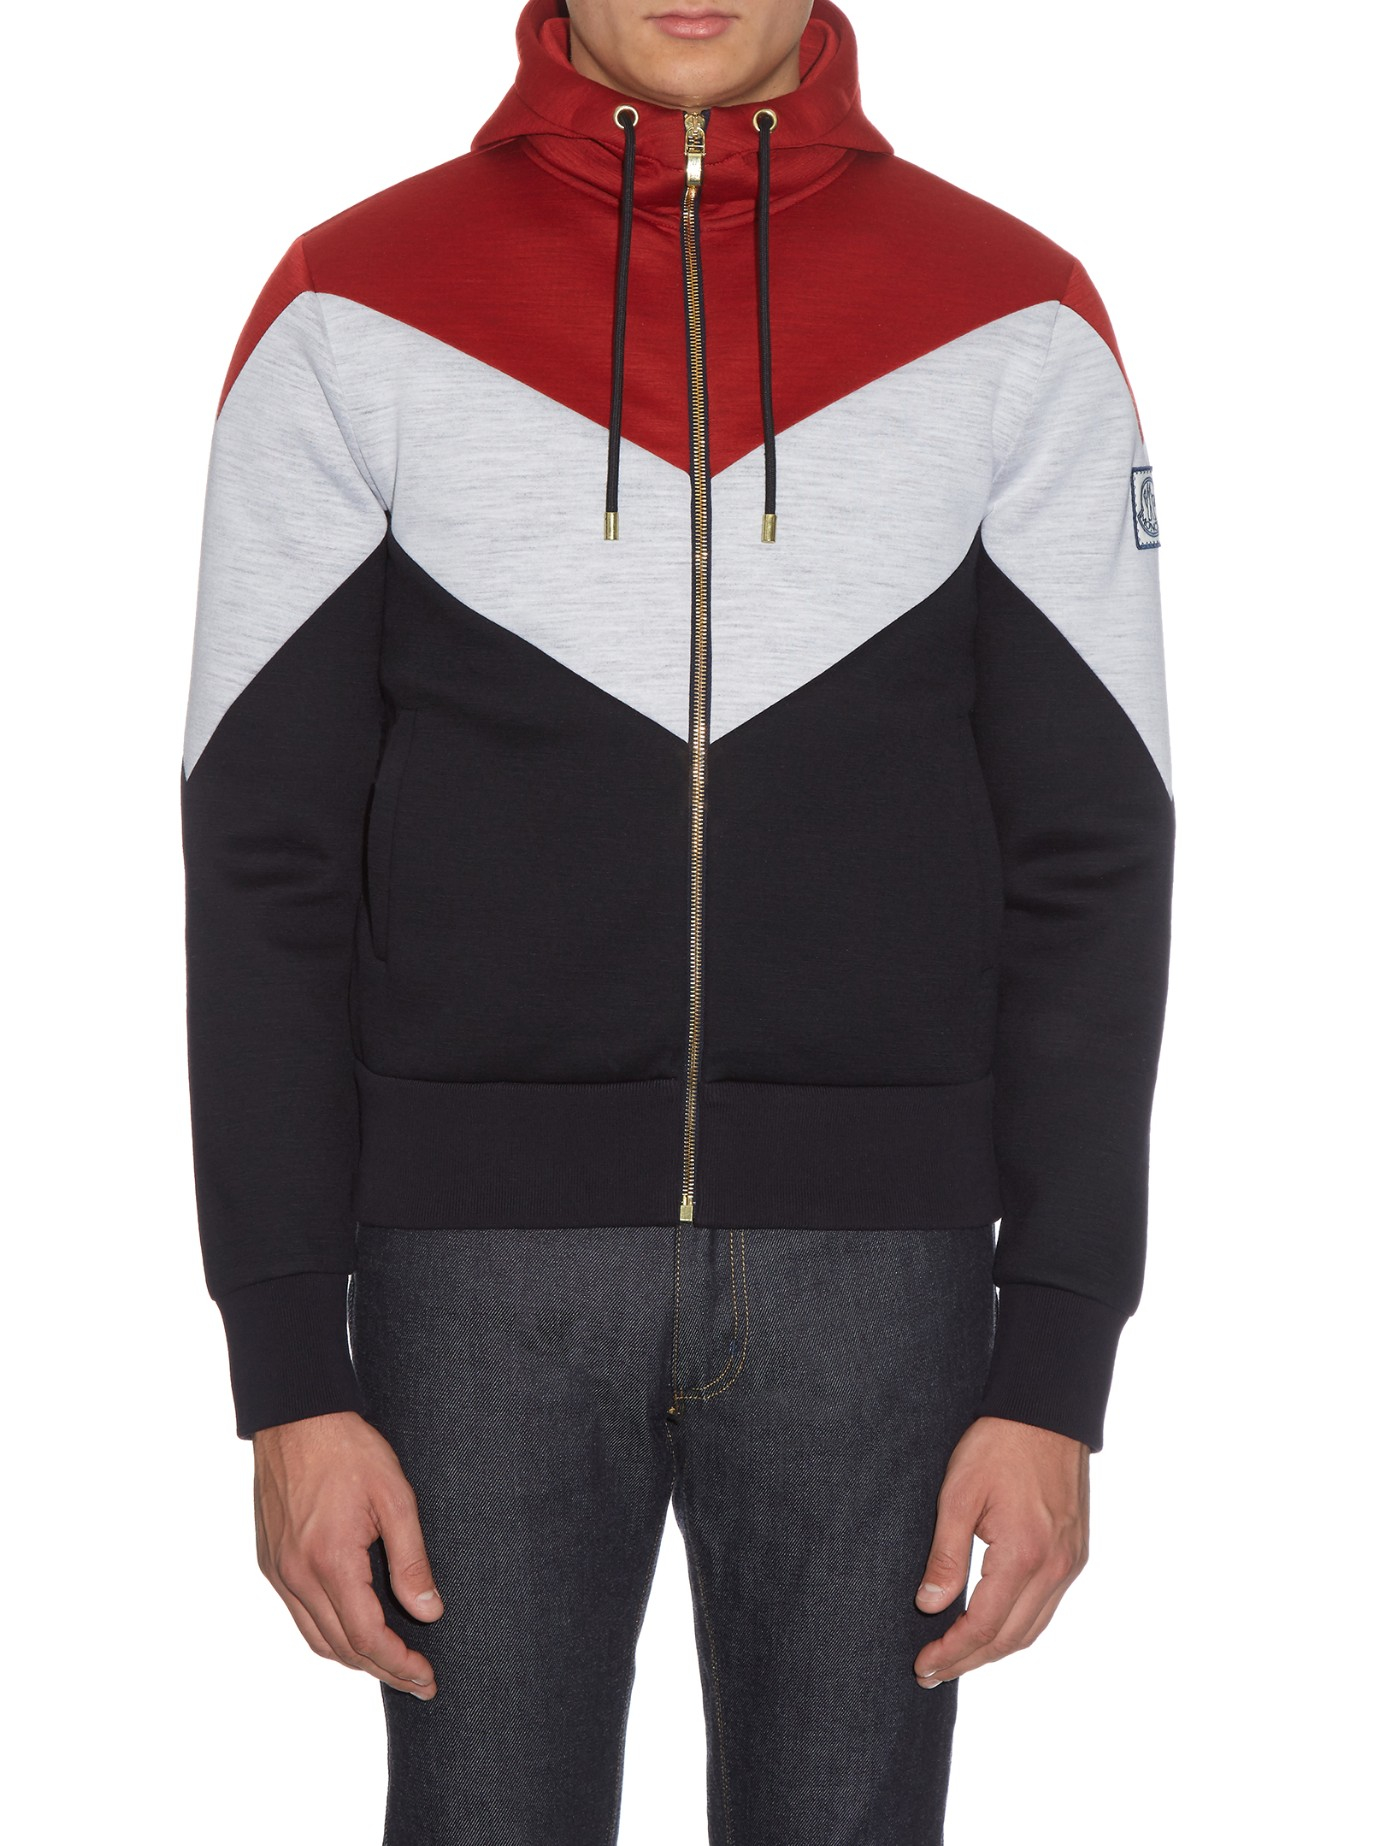 Moncler Gamme Bleu Striped Zip-up Hooded Wool Sweatshirt in Red for Men - Lyst